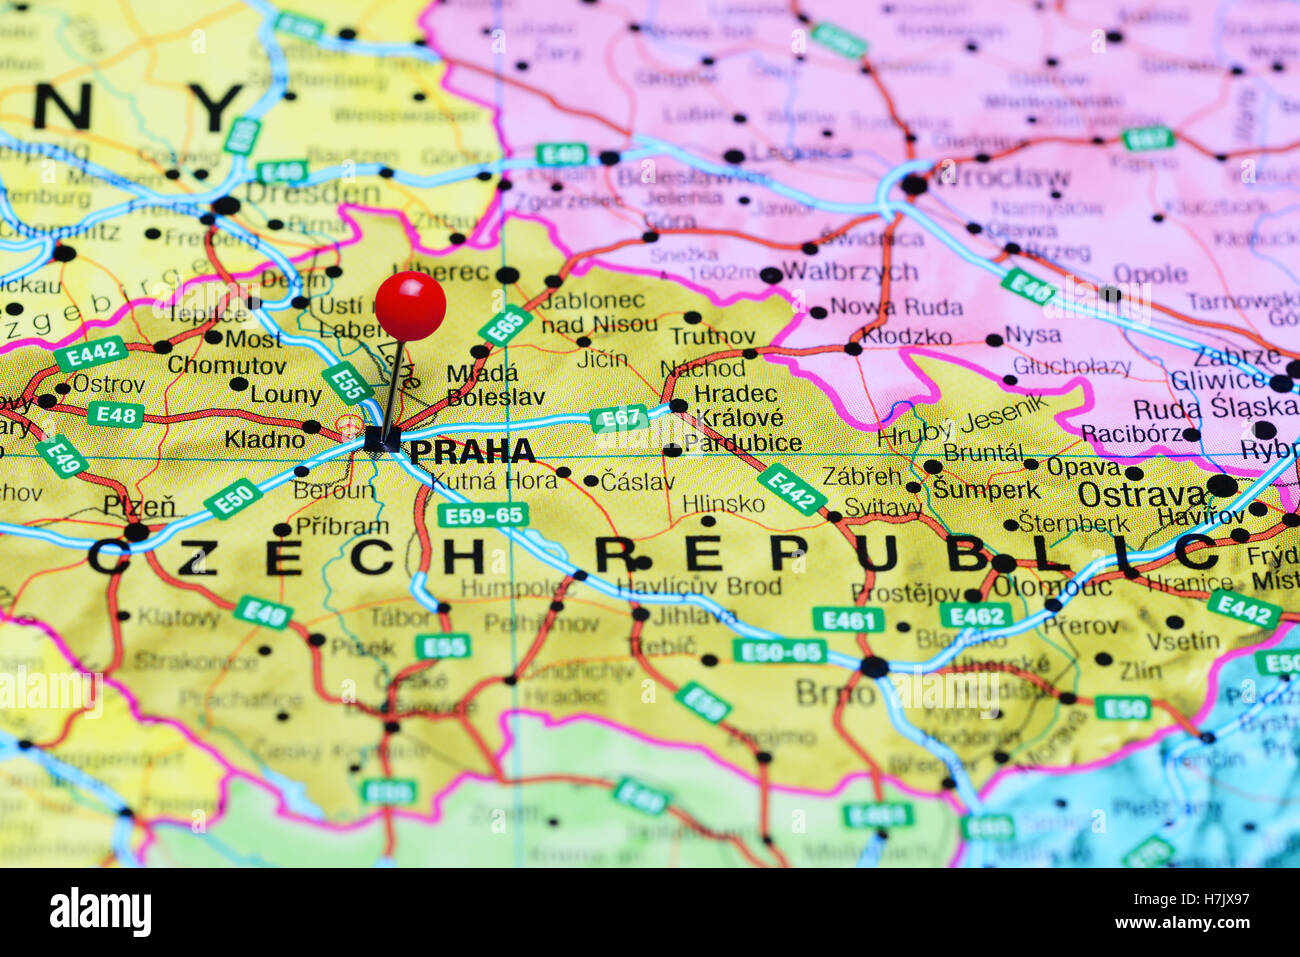 Prague Pinned On A Map Of Czech Republic Stock Photo 125190947 Alamy